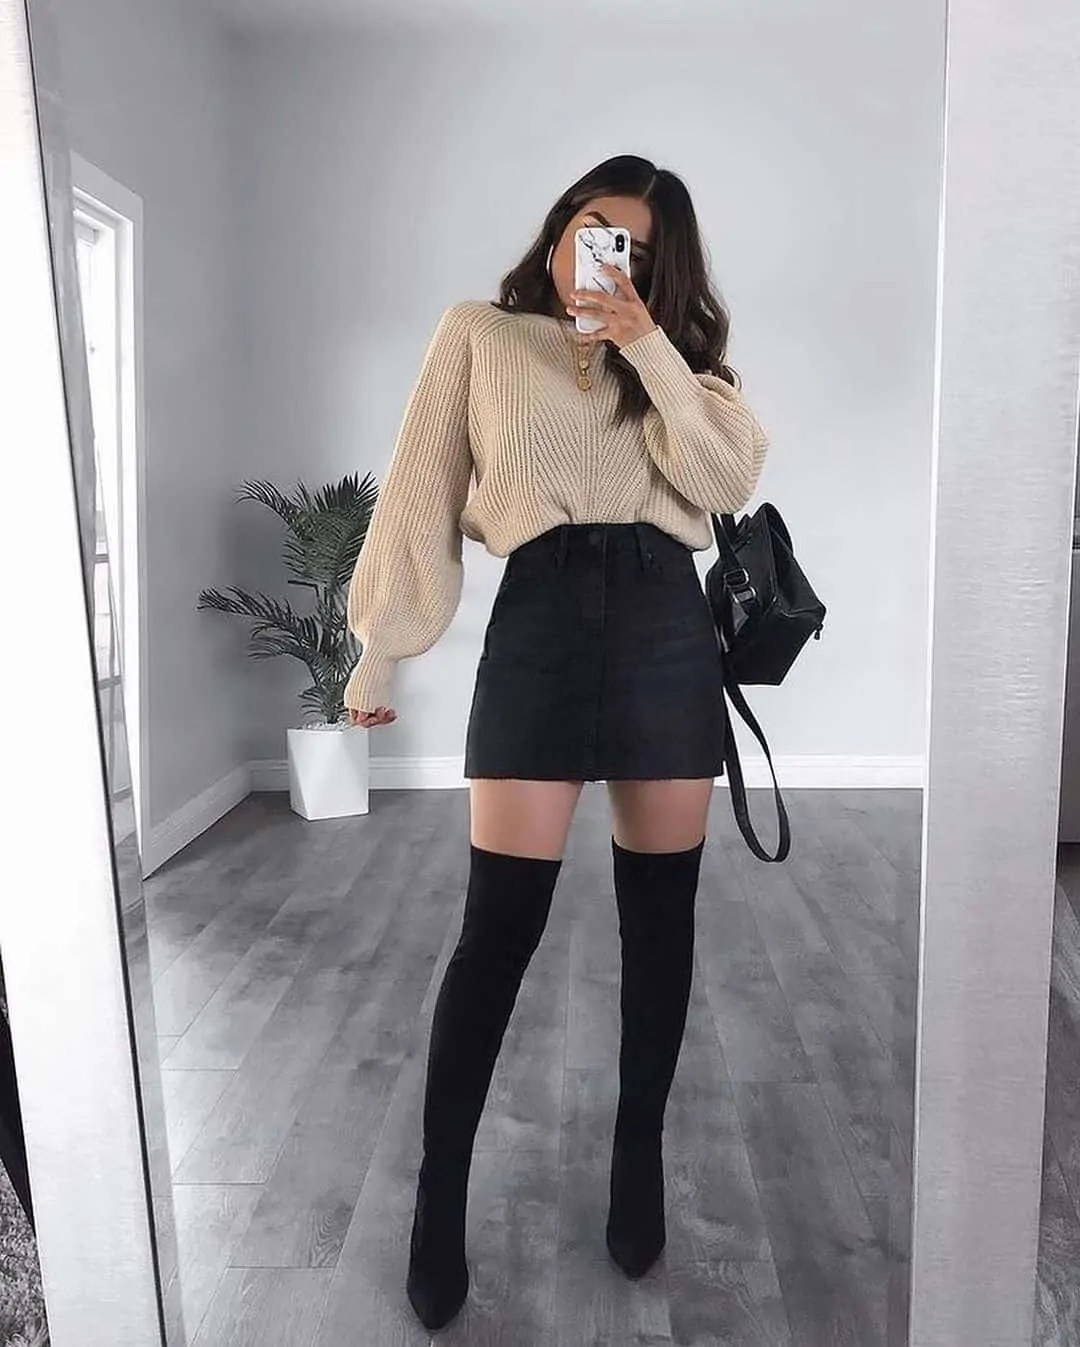 100+ fashion inspo outfits that you have to see no matter what your style is 125